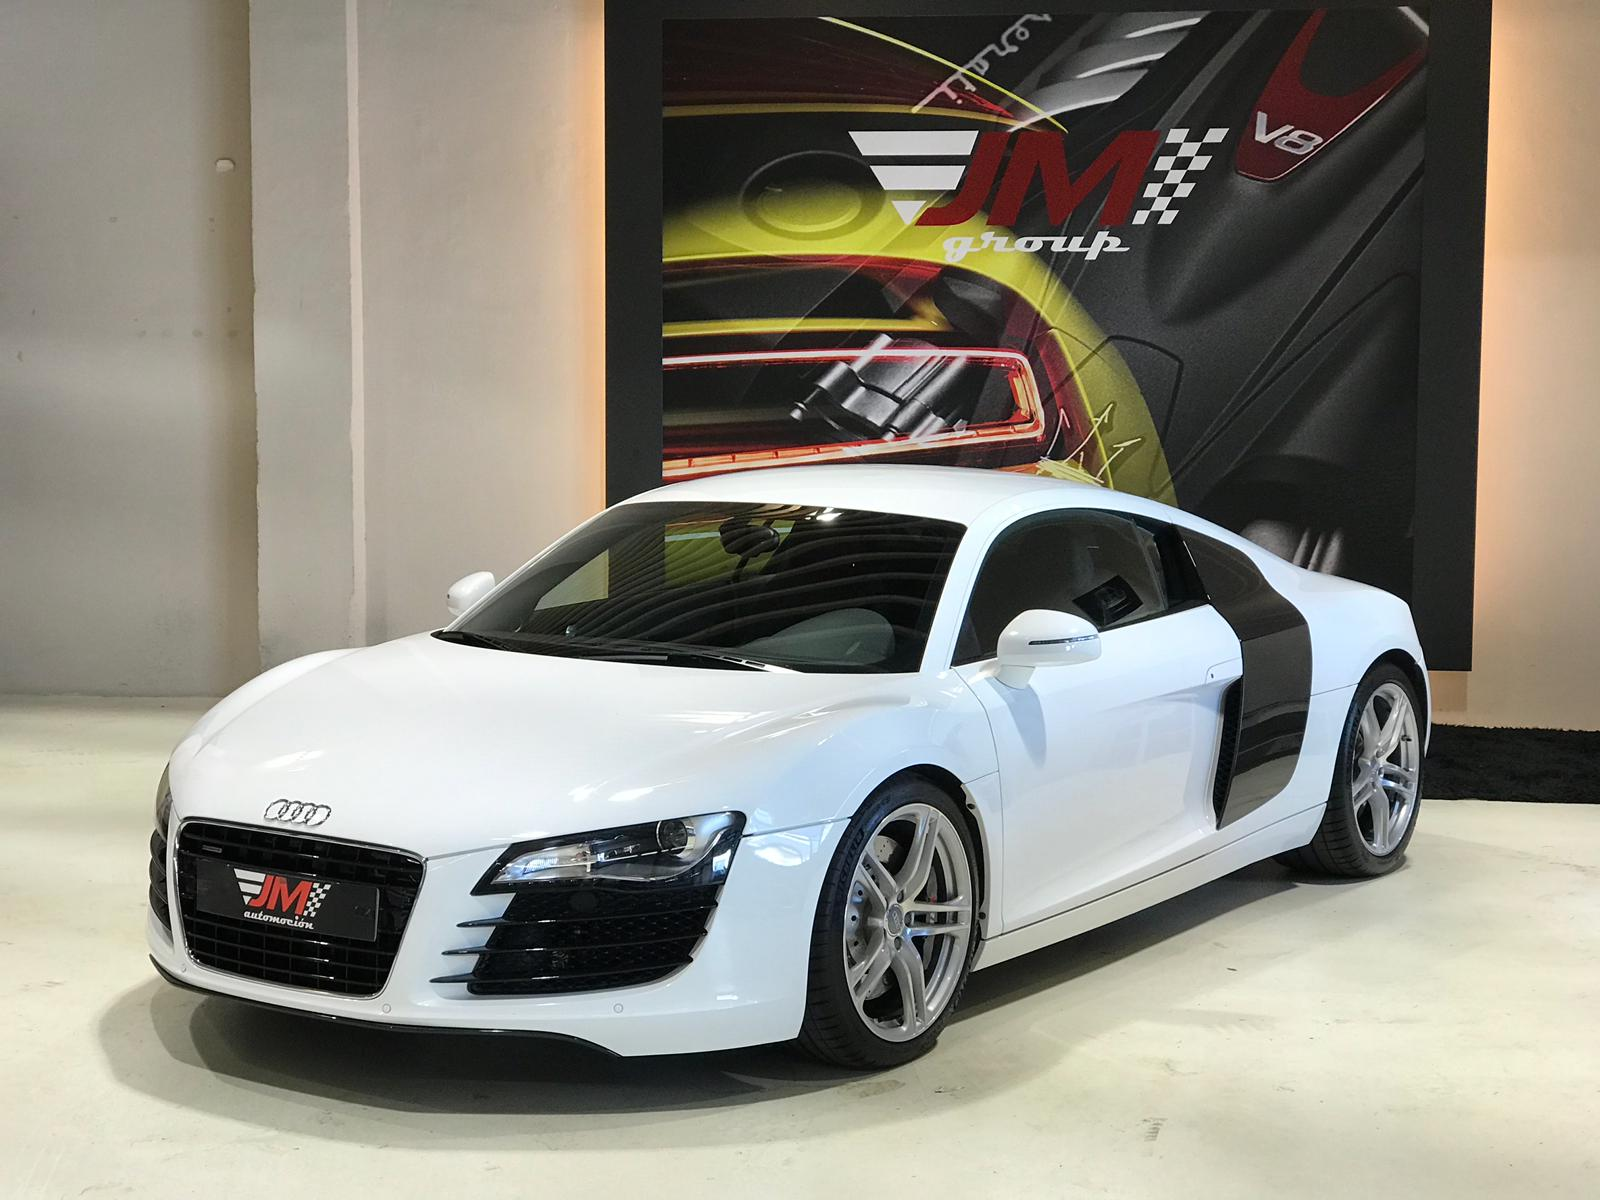 AUDI R8 4.2 FSI R TRONIC -IMPECABLE ESTADO-